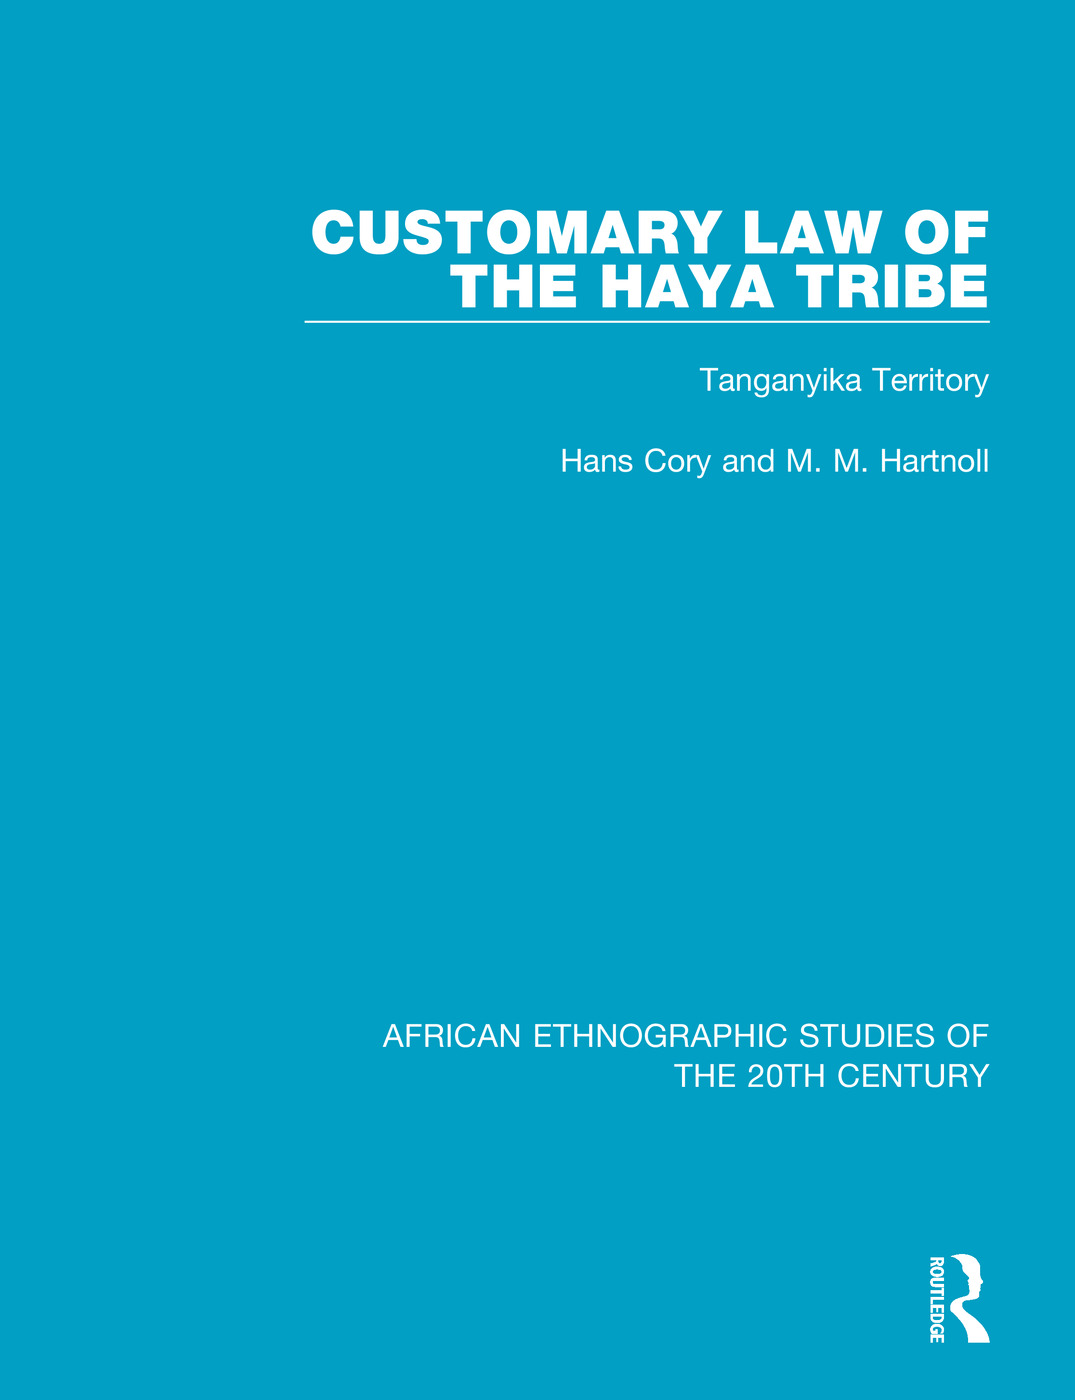 Customary Law of the Haya Tribe: Tanganyika Territory book cover